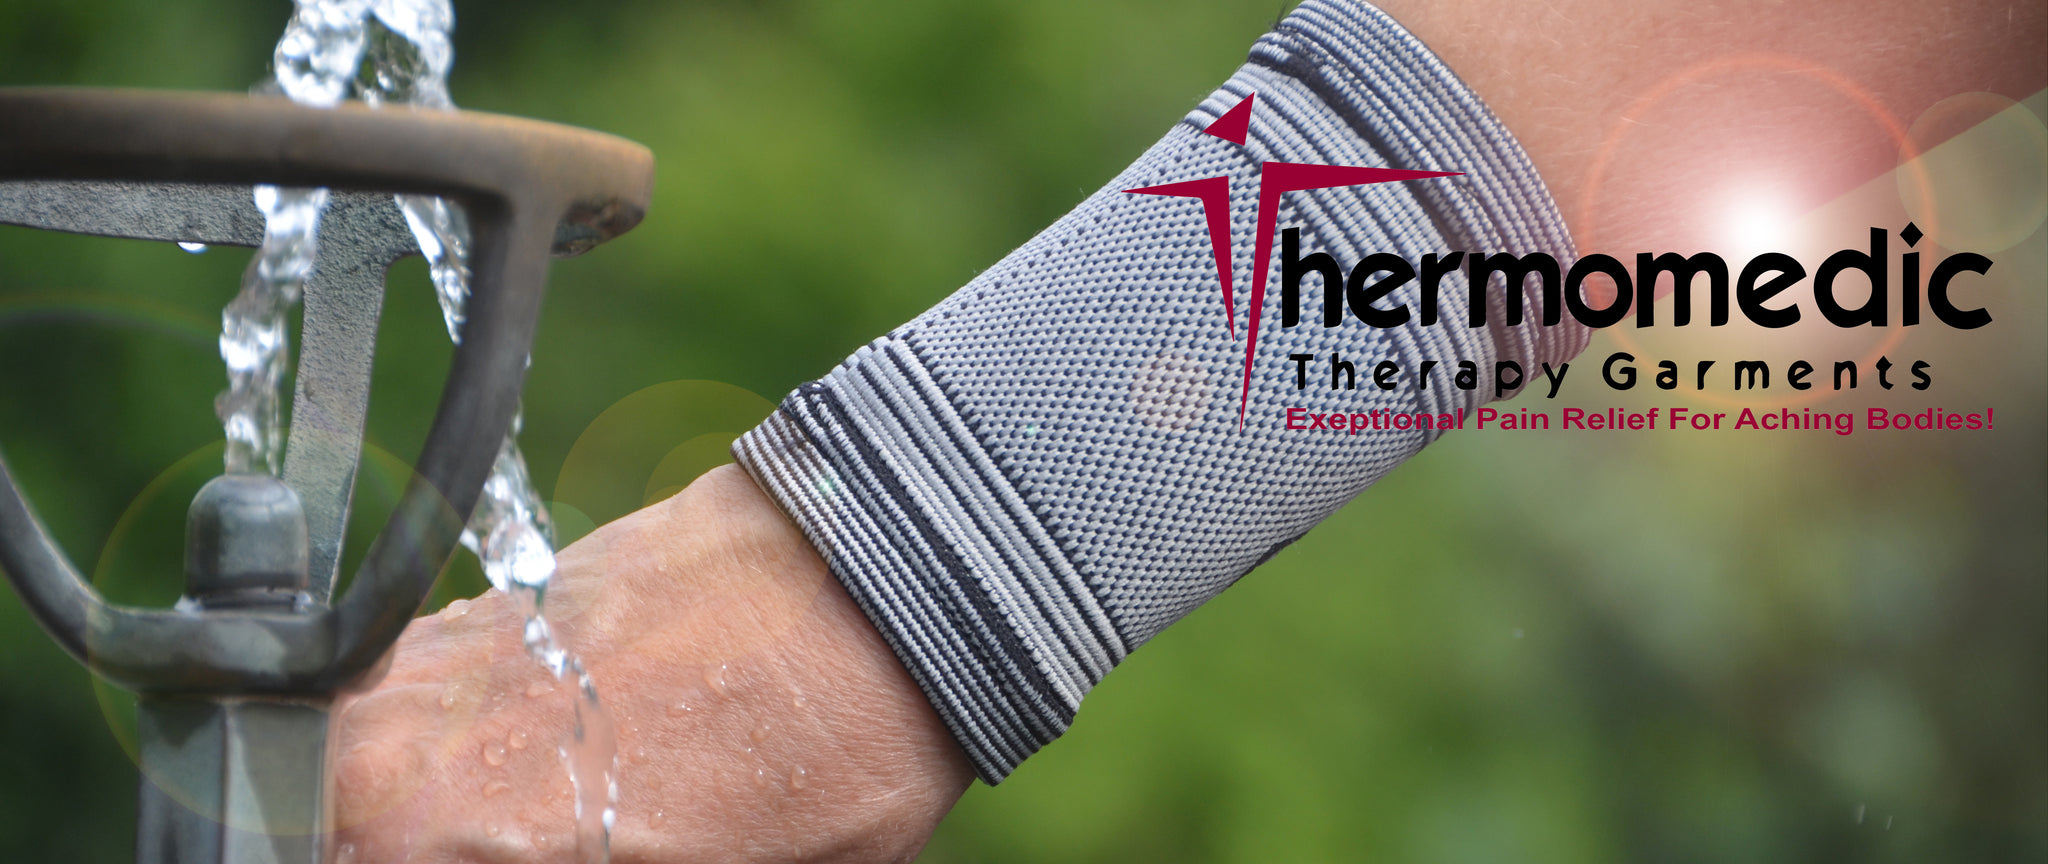 How Can Thermomedic Therapy Garments Help Me? Best Natural Therapy For Hand Pain?